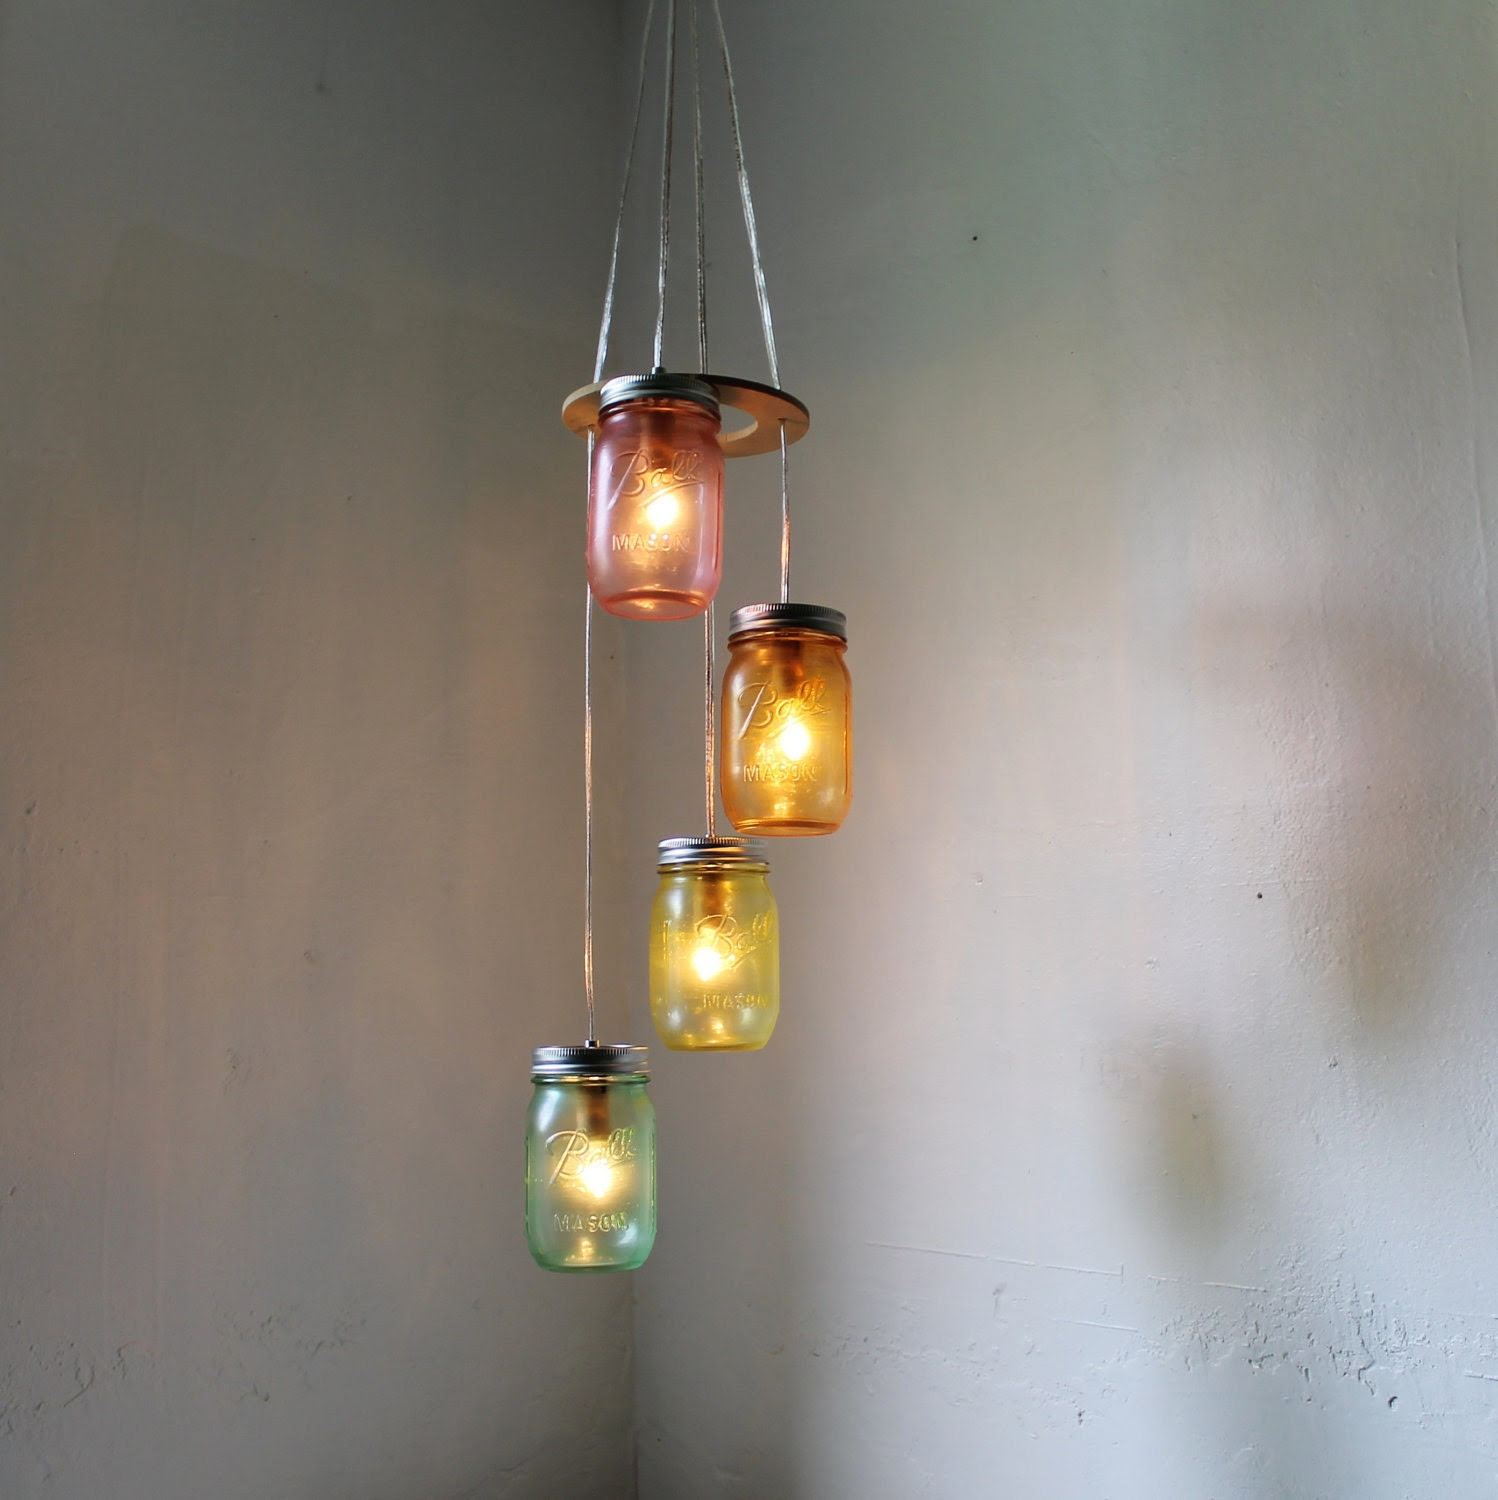 Over the Rainbow - Mason Jar Chandelier - Spiral Cascading Waterfall Hanging Mason Jar Lighting Fixture - Upcycled BootsNGus Lamp Design - BootsNGus